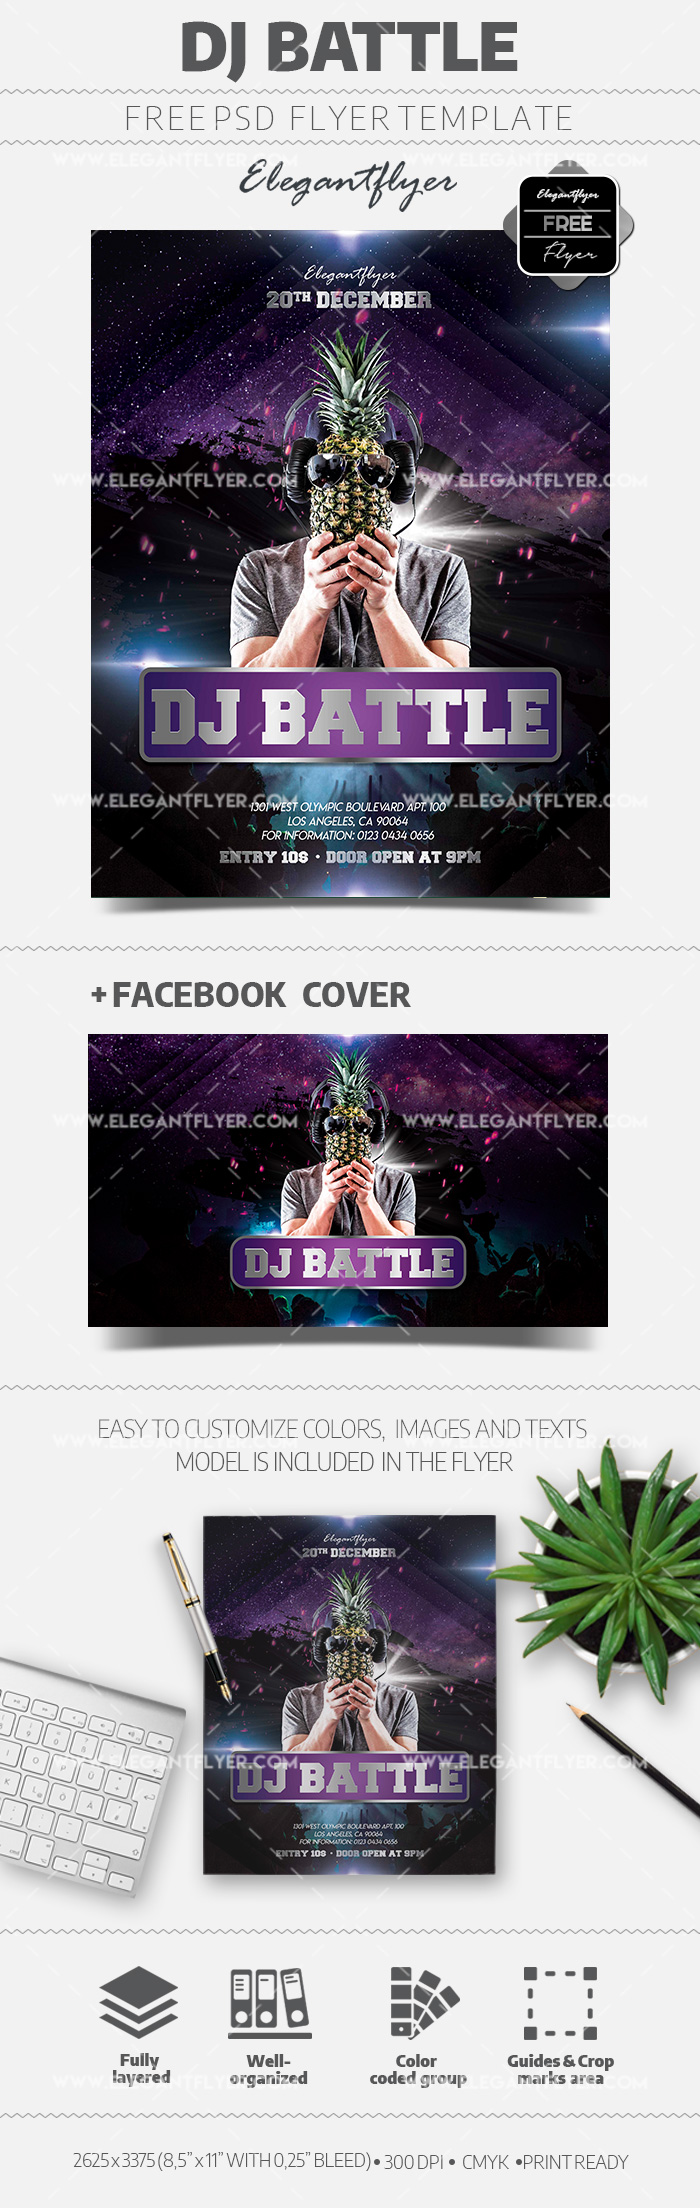 DJ Battle – Free Flyer in PSD